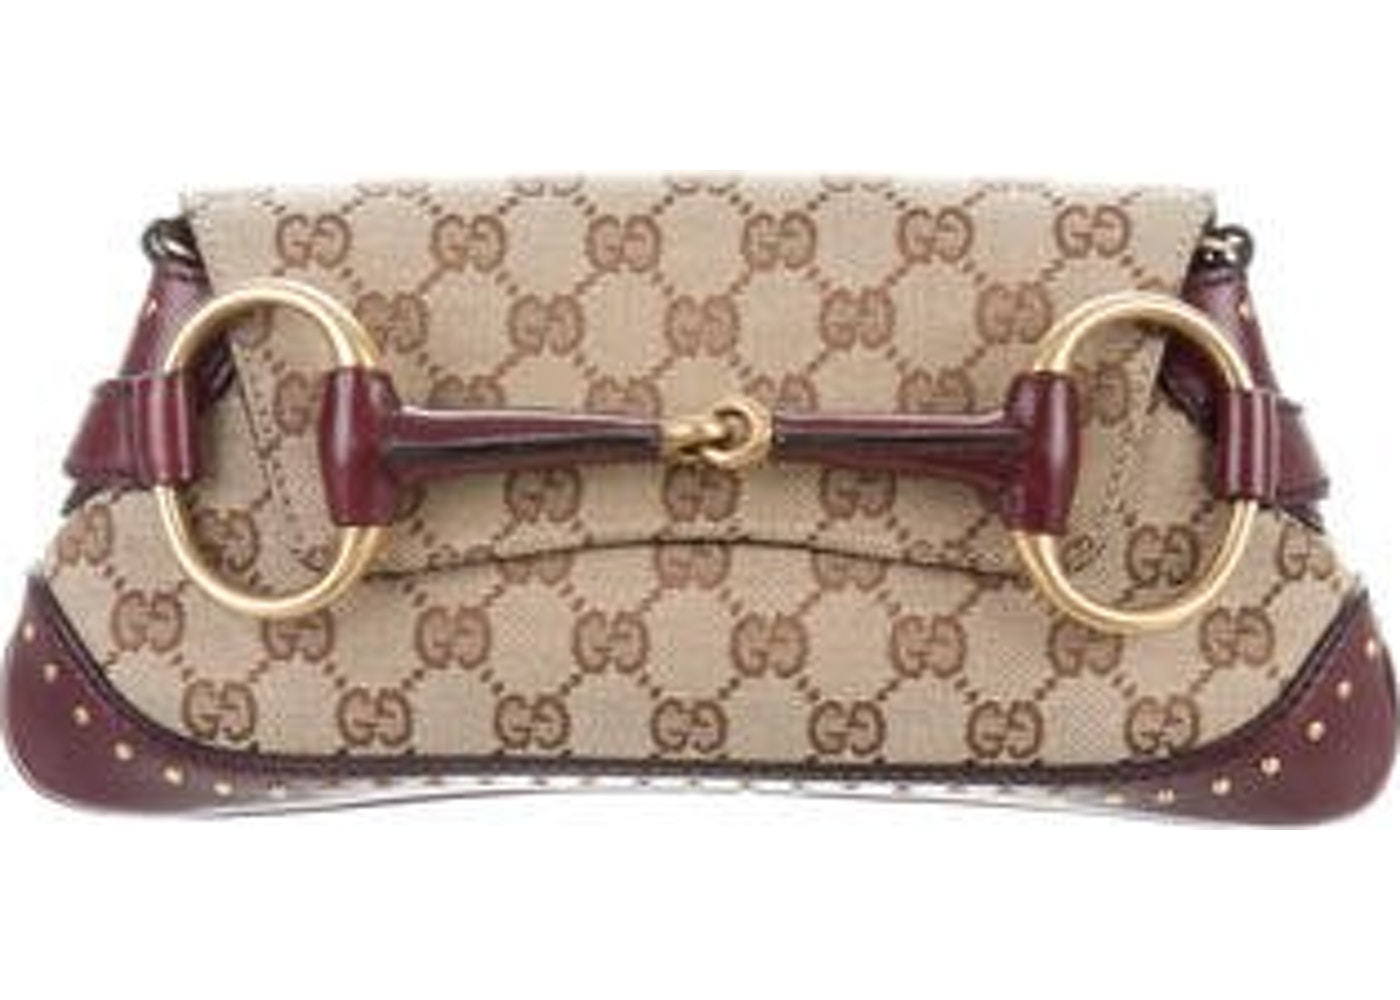 08d05b990f35c8 Gucci Horsebit Clutch Clutch Horsebit Brown/Tan/Maroon